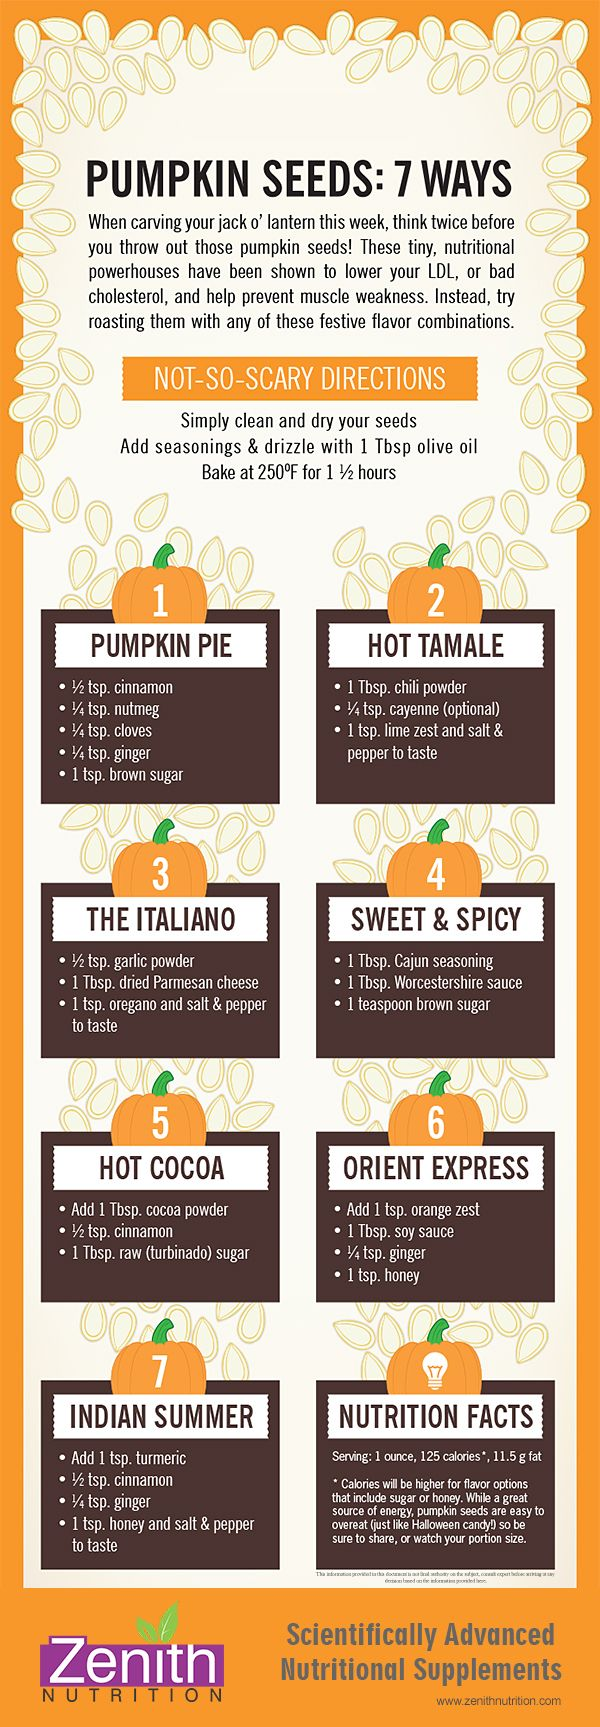 Pumpkin Seeds. Nutritional facts of Pumpkin seeds. Best supplements from Zenith Nutrition. Health Supplements. Nutritional Supplements. Health Infographics